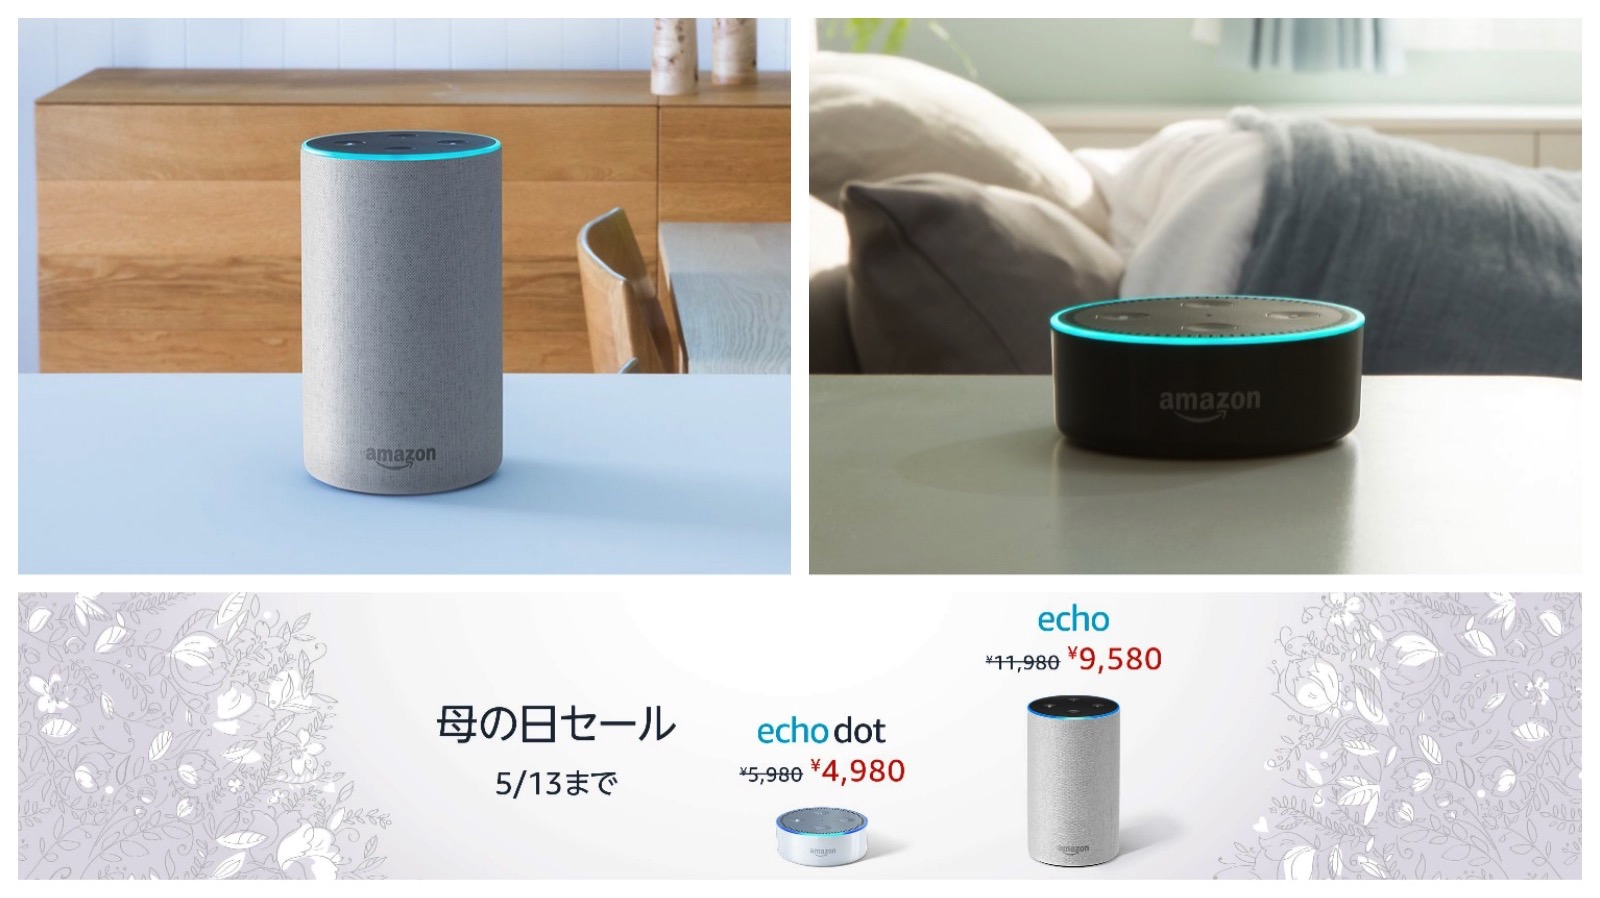 Amazon Echo Echo Dot Sale Mothers Day